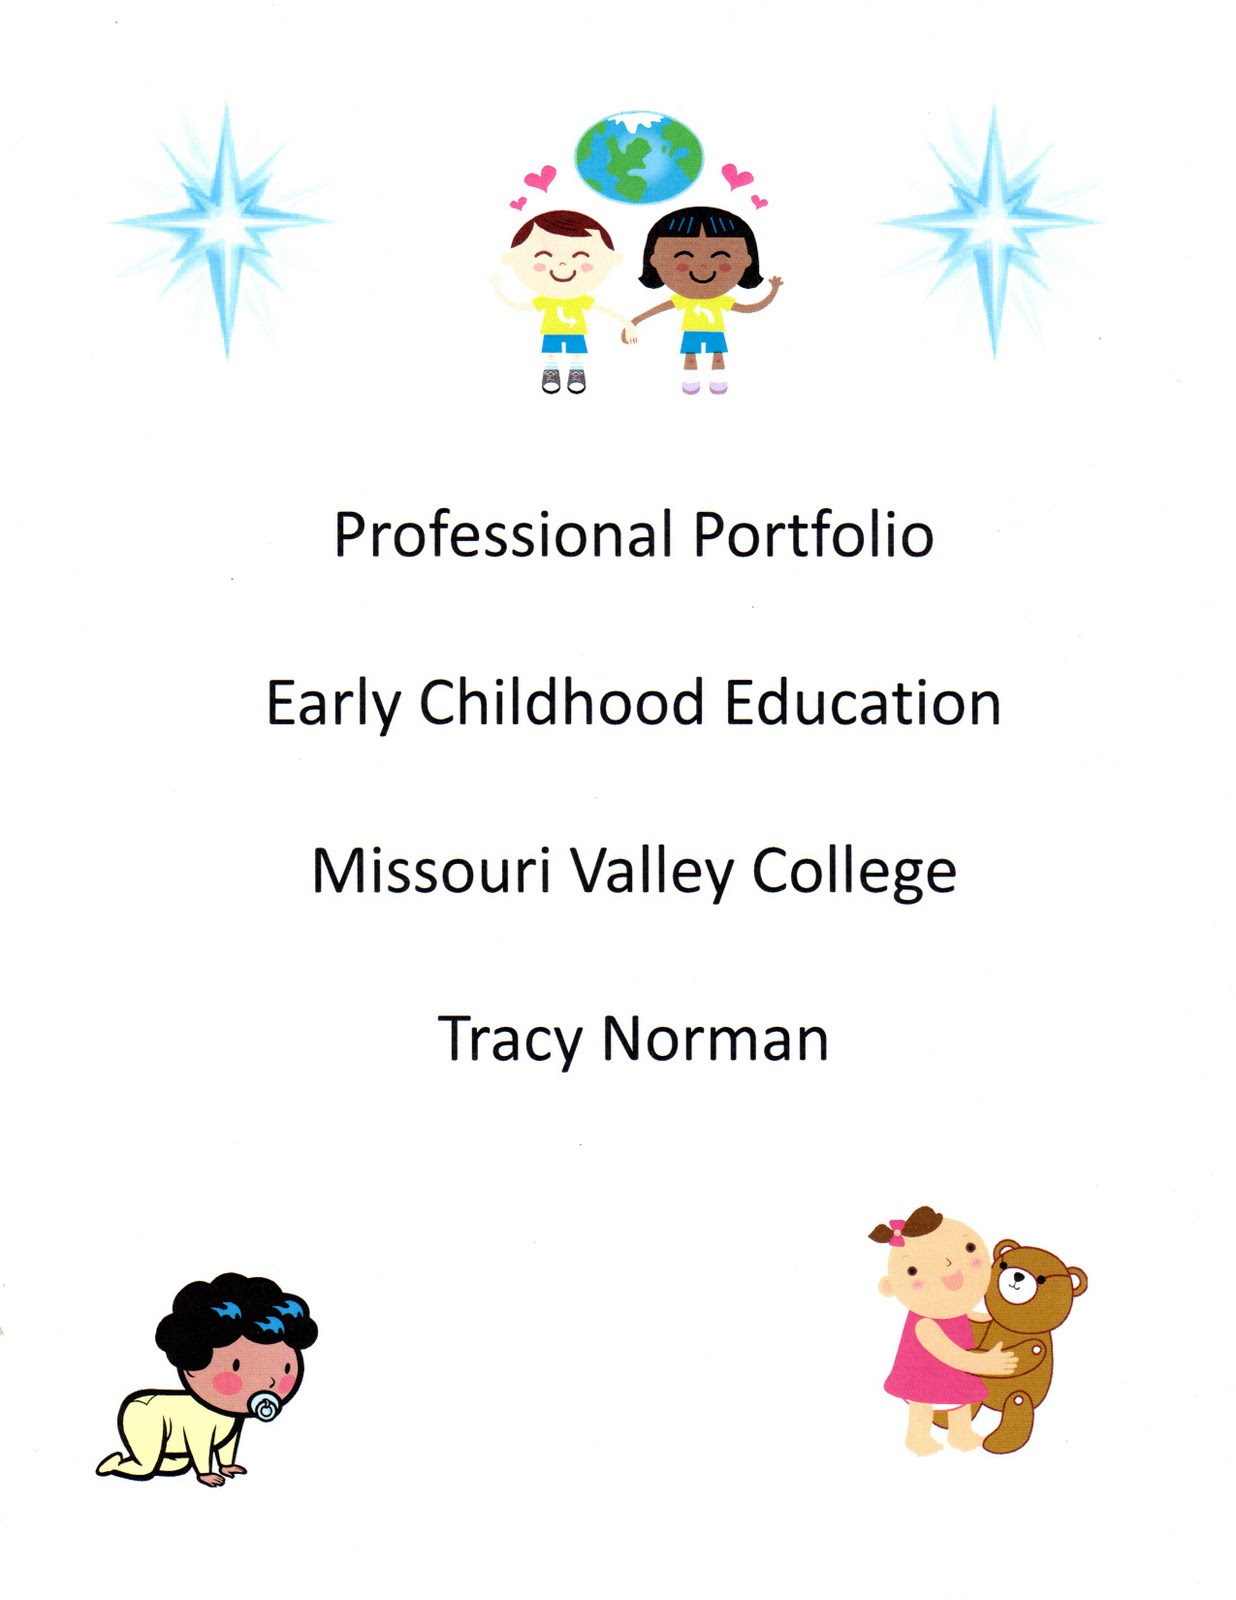 resume cover letter early childhood education resume resume cover letter early childhood education early childhood teacher cover letter career faqs tracys early childhood